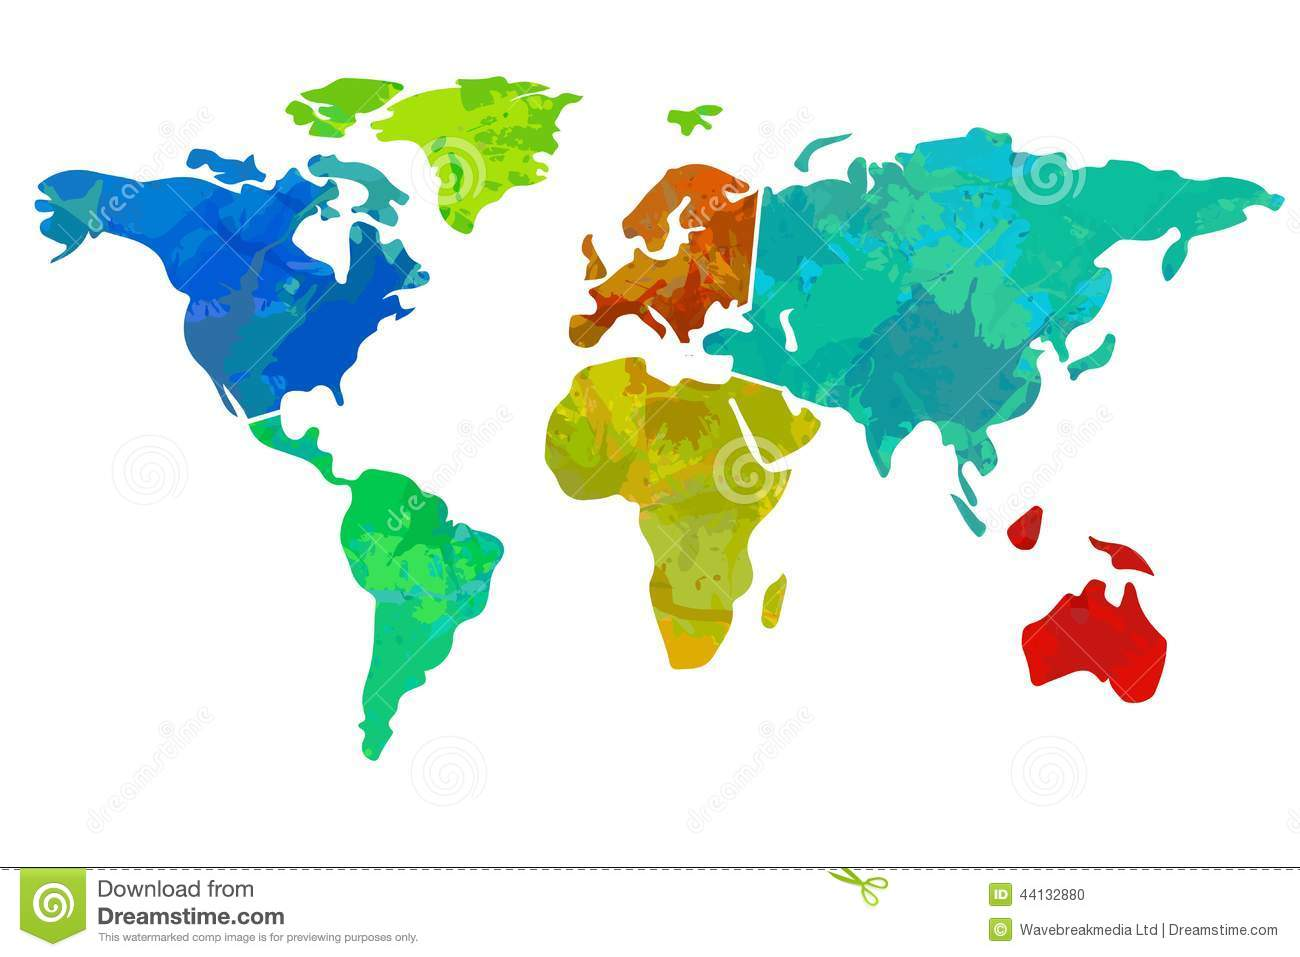 Colourful world map stock illustration illustration of background colourful world map gumiabroncs Image collections